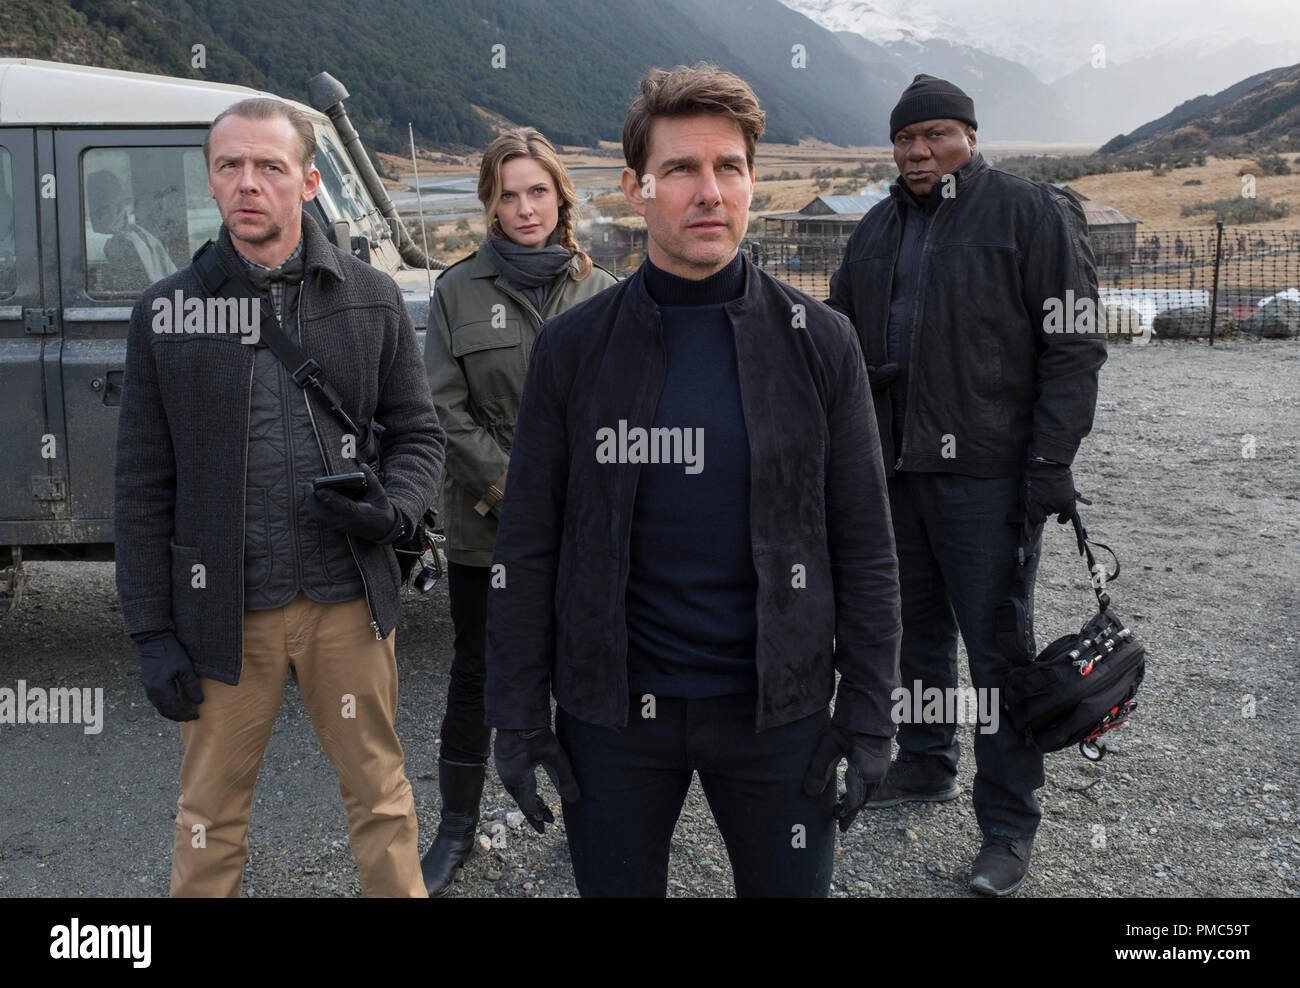 Left to right: Simon Pegg as Benji Dunn, Rebecca Ferguson as Ilsa Faust, Tom Cruise as Ethan Hunt and Ving Rhames as Luther Stickell in MISSION: IMPOSSIBLE - FALLOUT, from Paramount Pictures and Skydance. (2018) - Stock Image